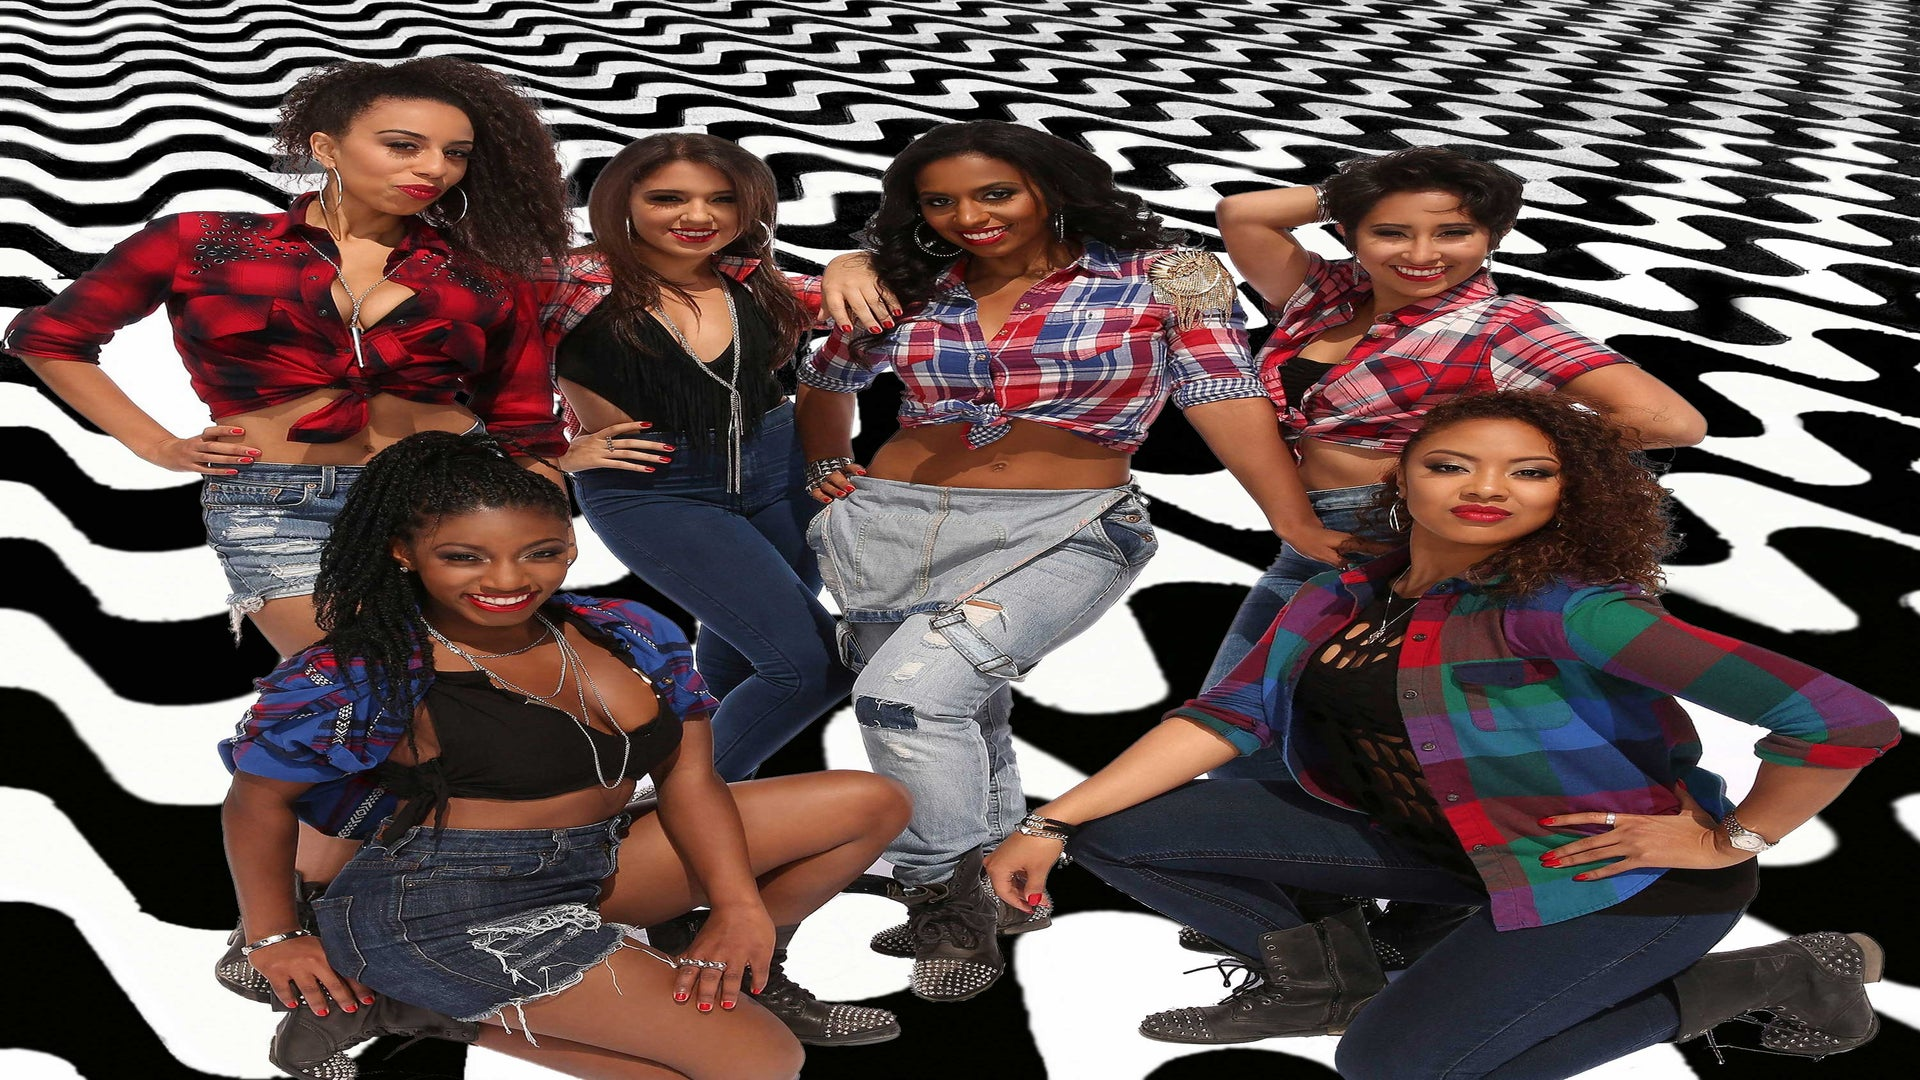 Cantu and The Syncopated Ladies Show Us Their 'Hairography'